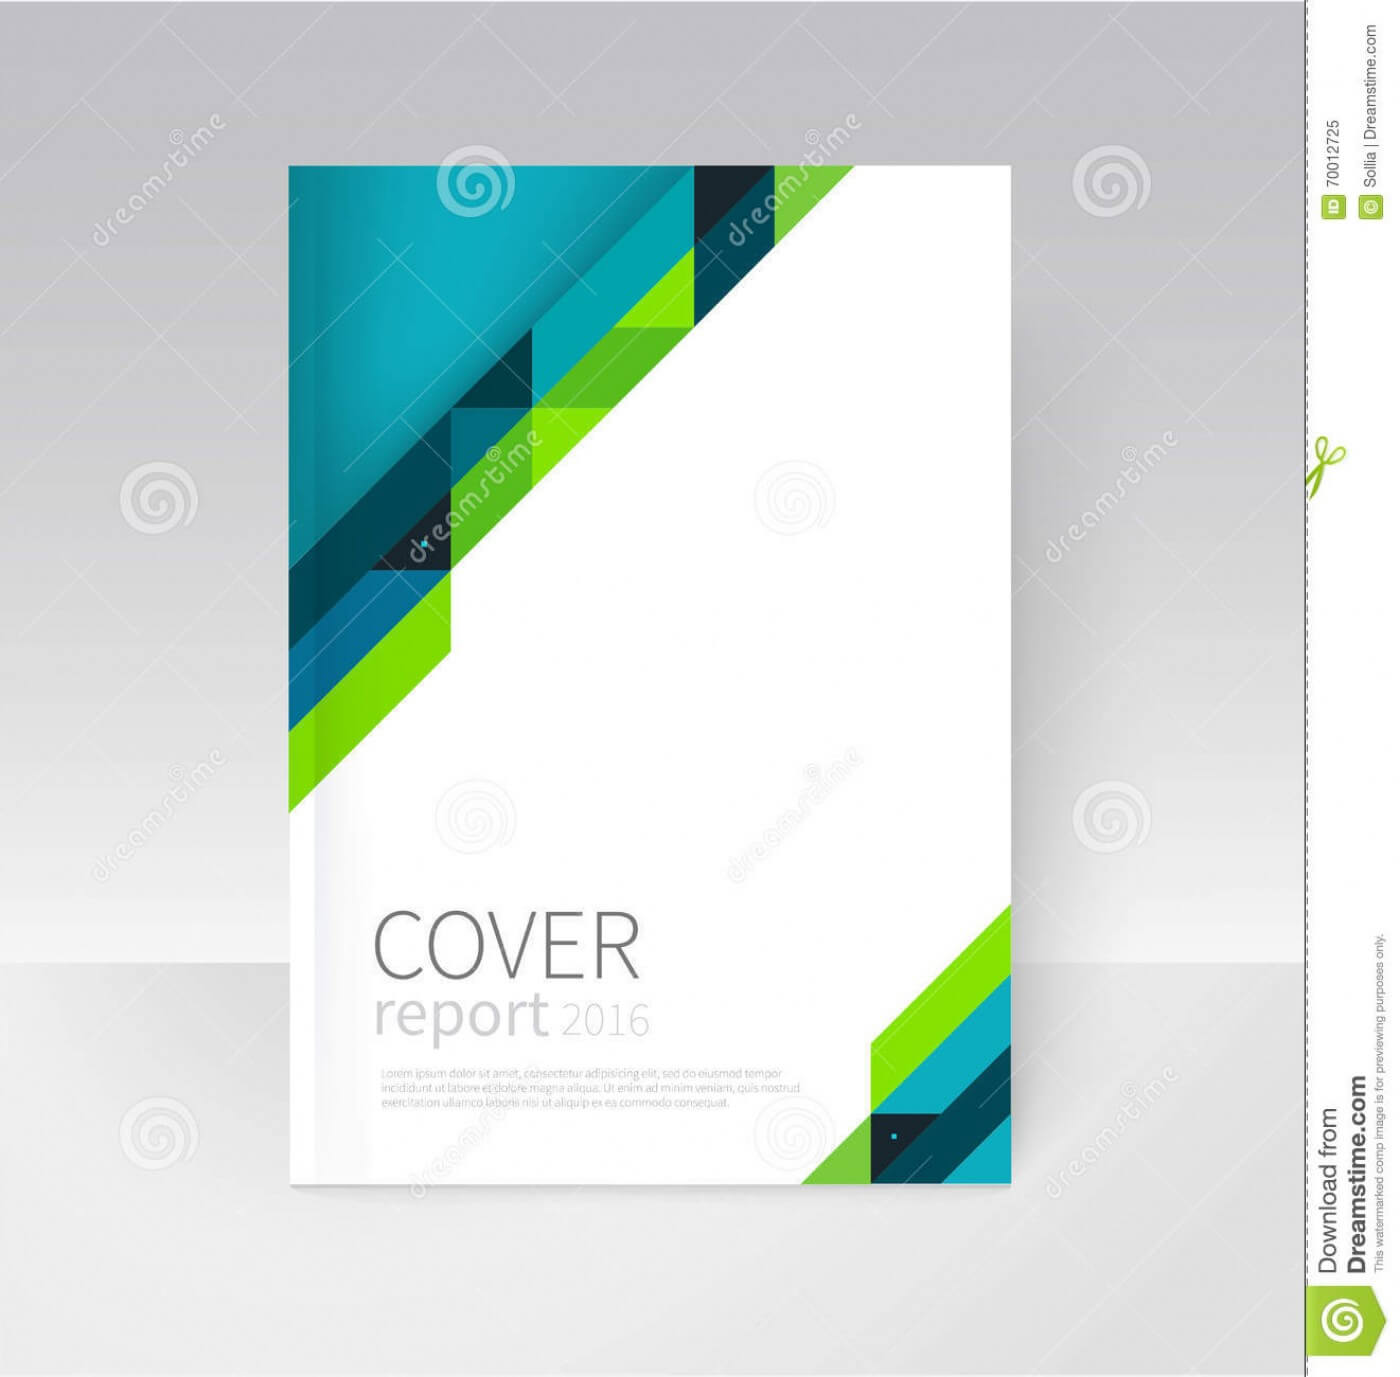 013 Microsoft Word Cover Page Templates Template Ideas For Microsoft Word Cover Page Templates Download